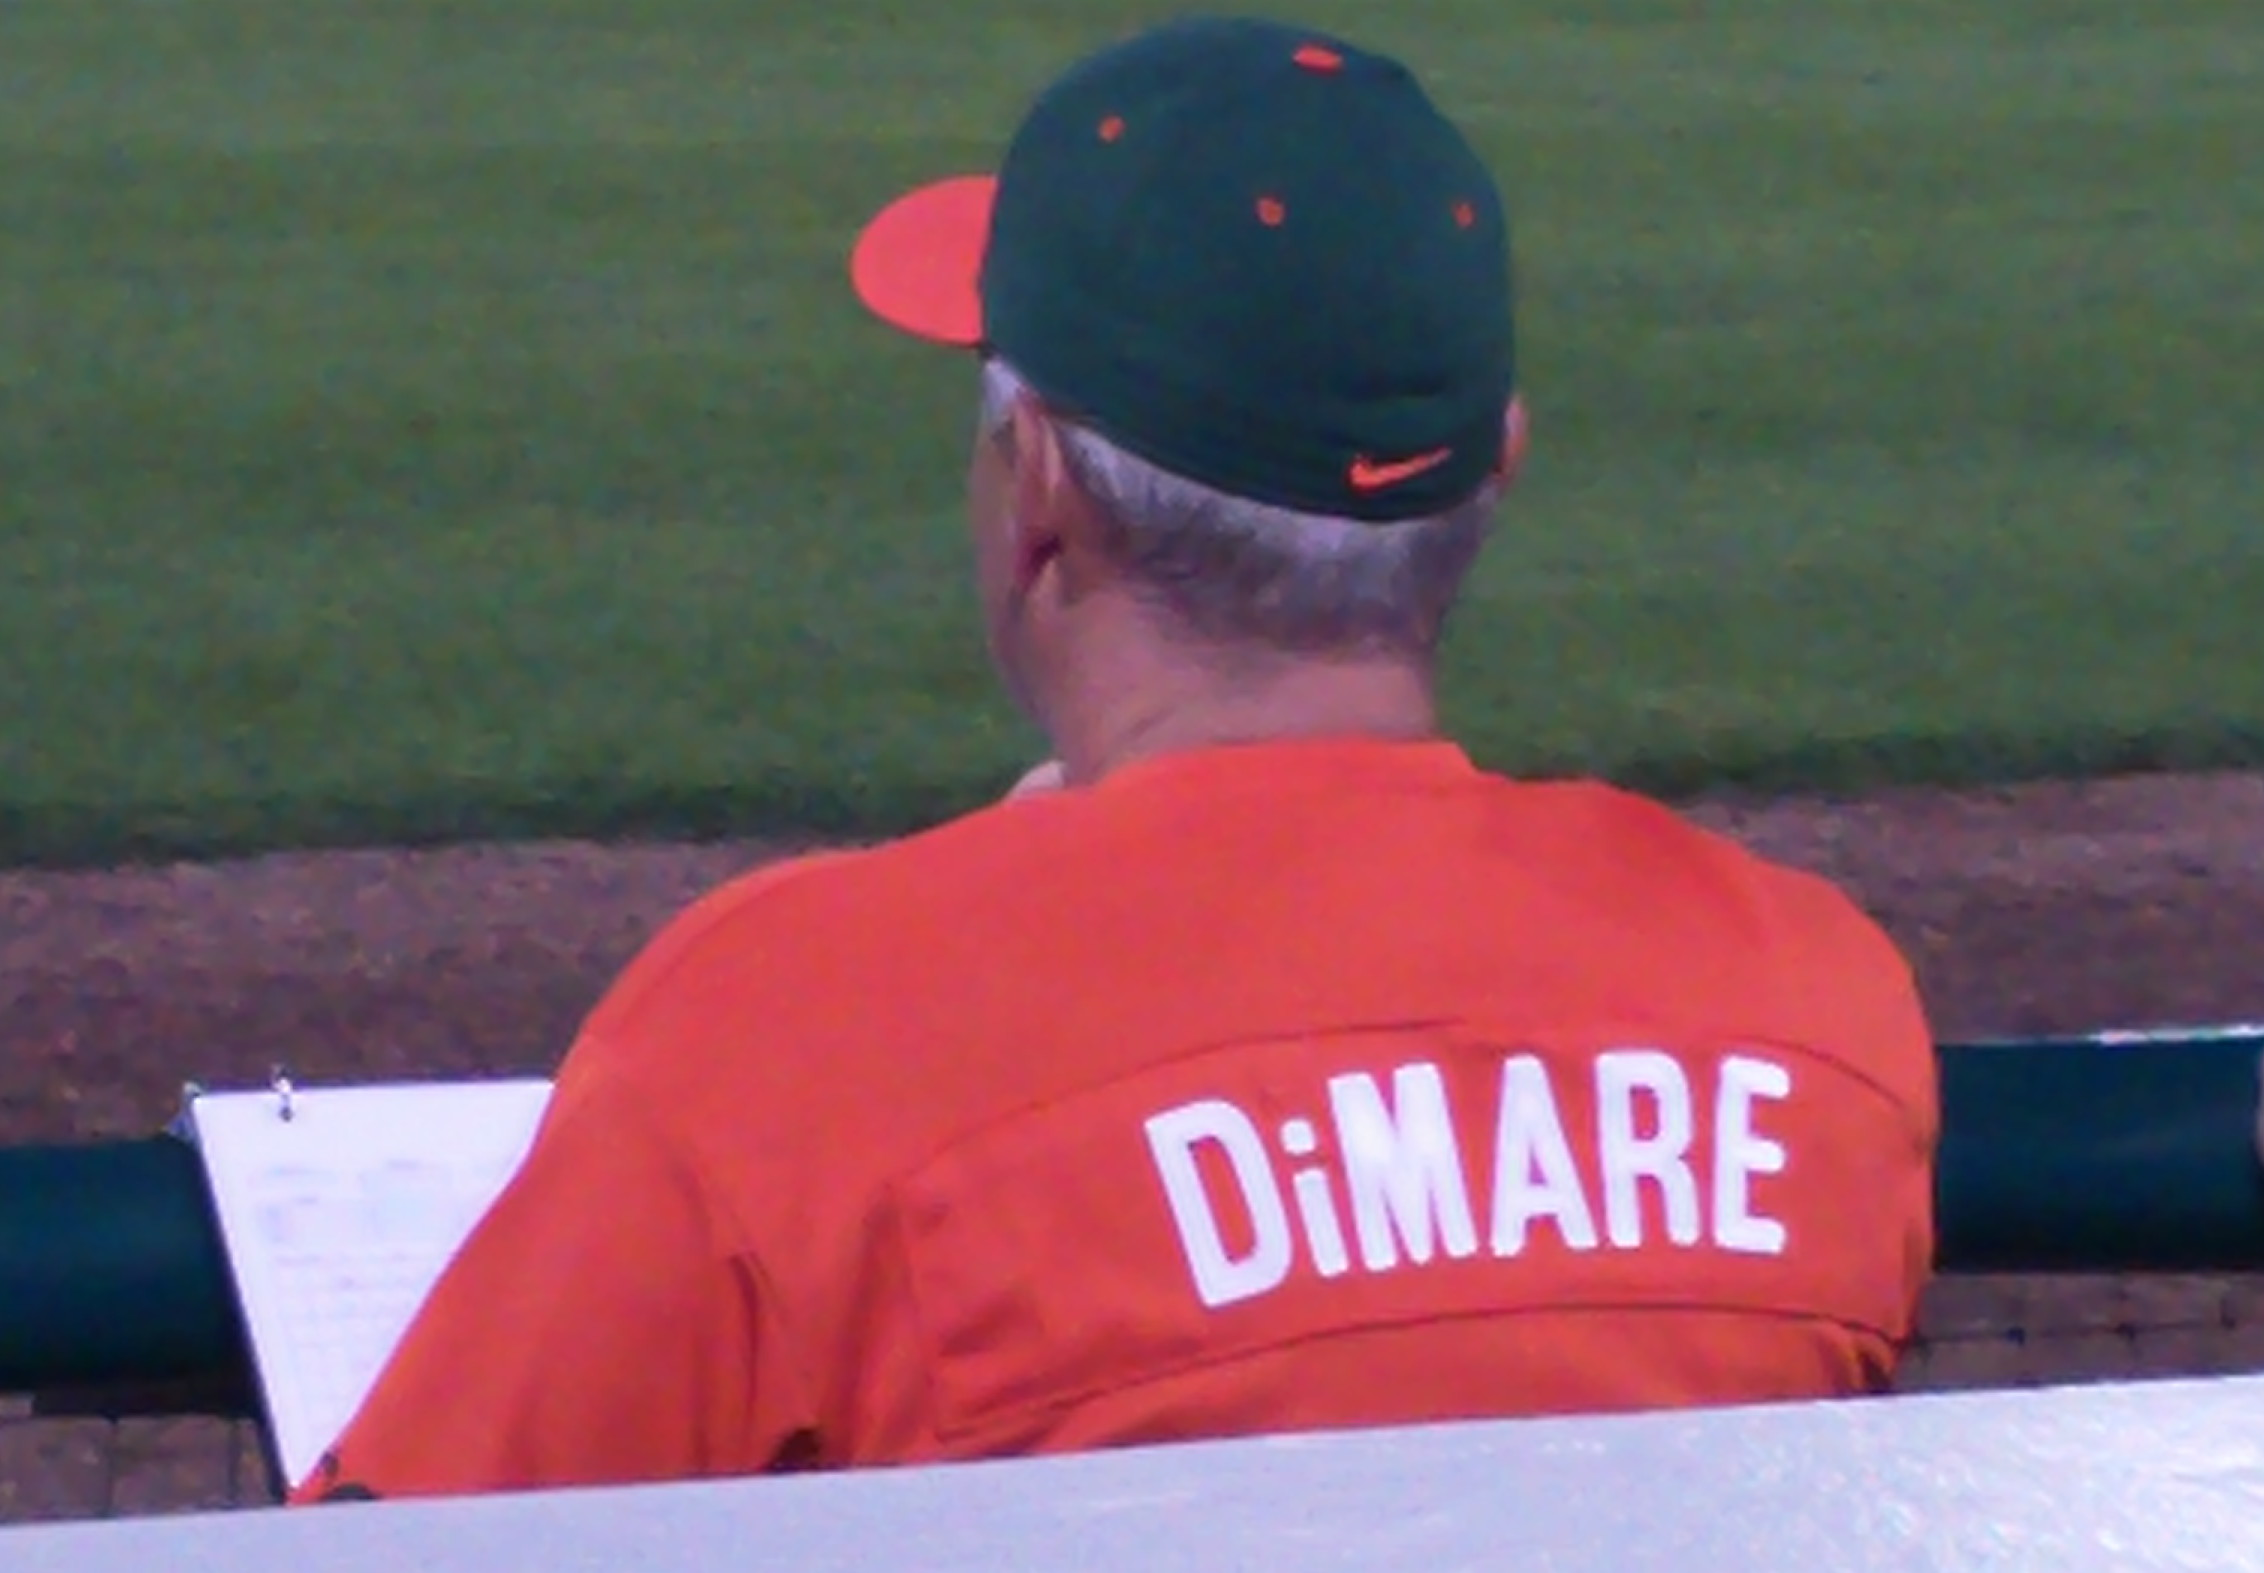 739f6c16dad ... hit the ball solidly and right at a UM infielder or outfielder who had  just been repositioned by DiMare. Coincidence  I think not! More often than  not ...